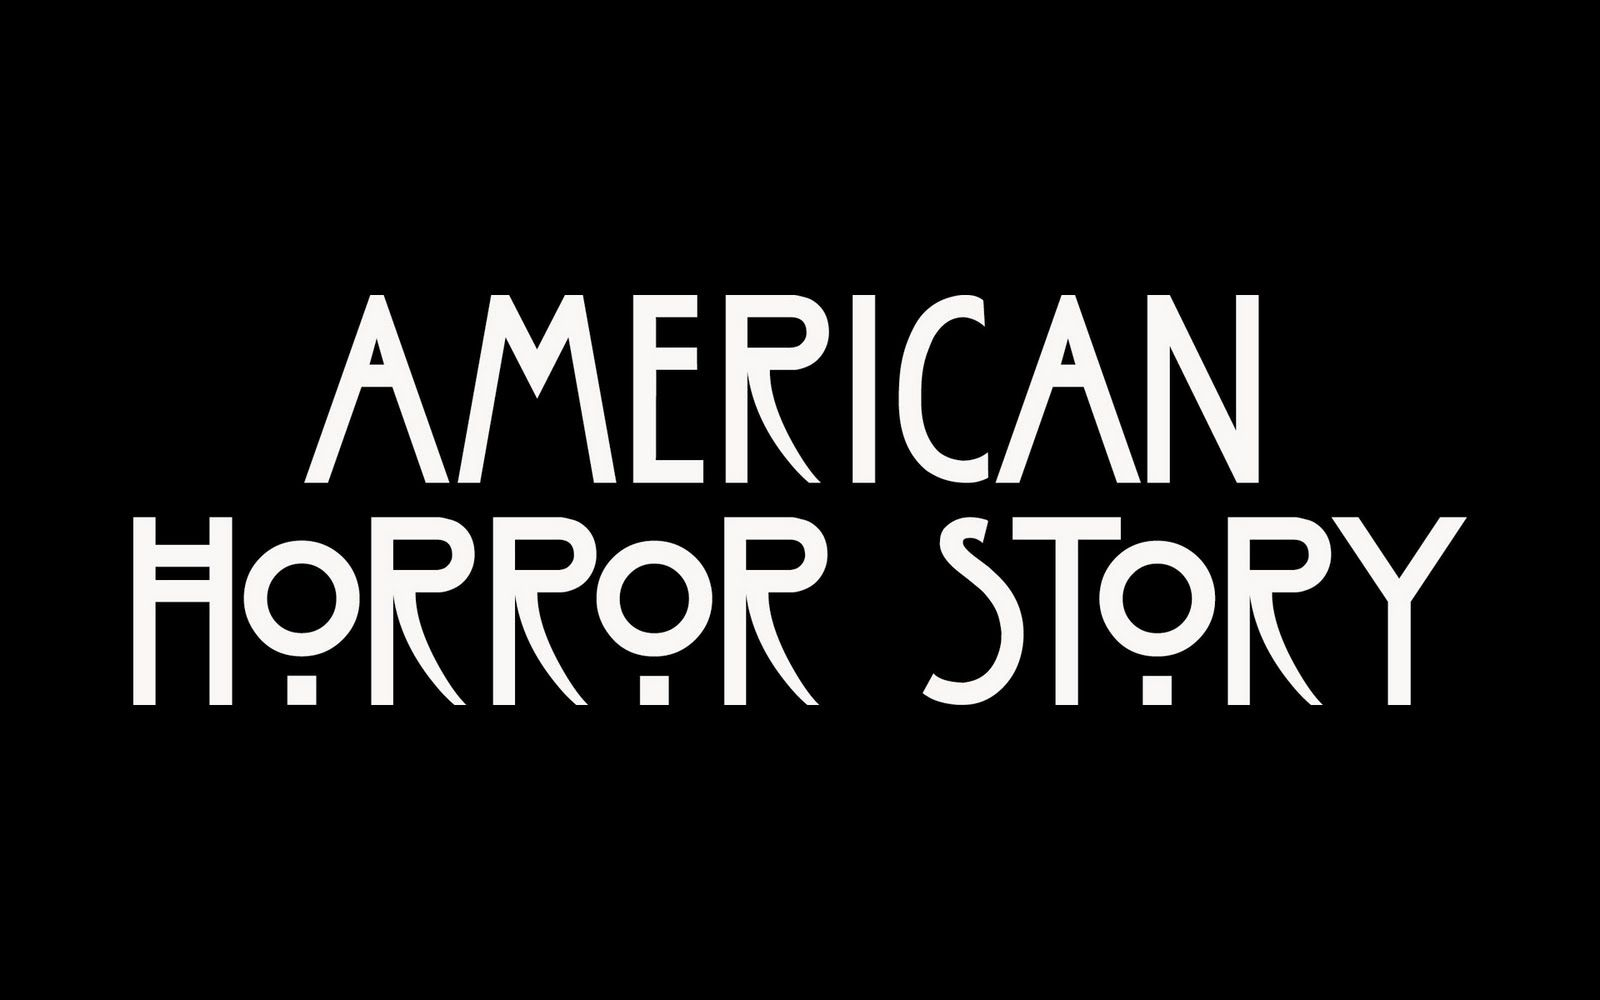 Free download ahs wallpapers American Horror Story Wallpapers